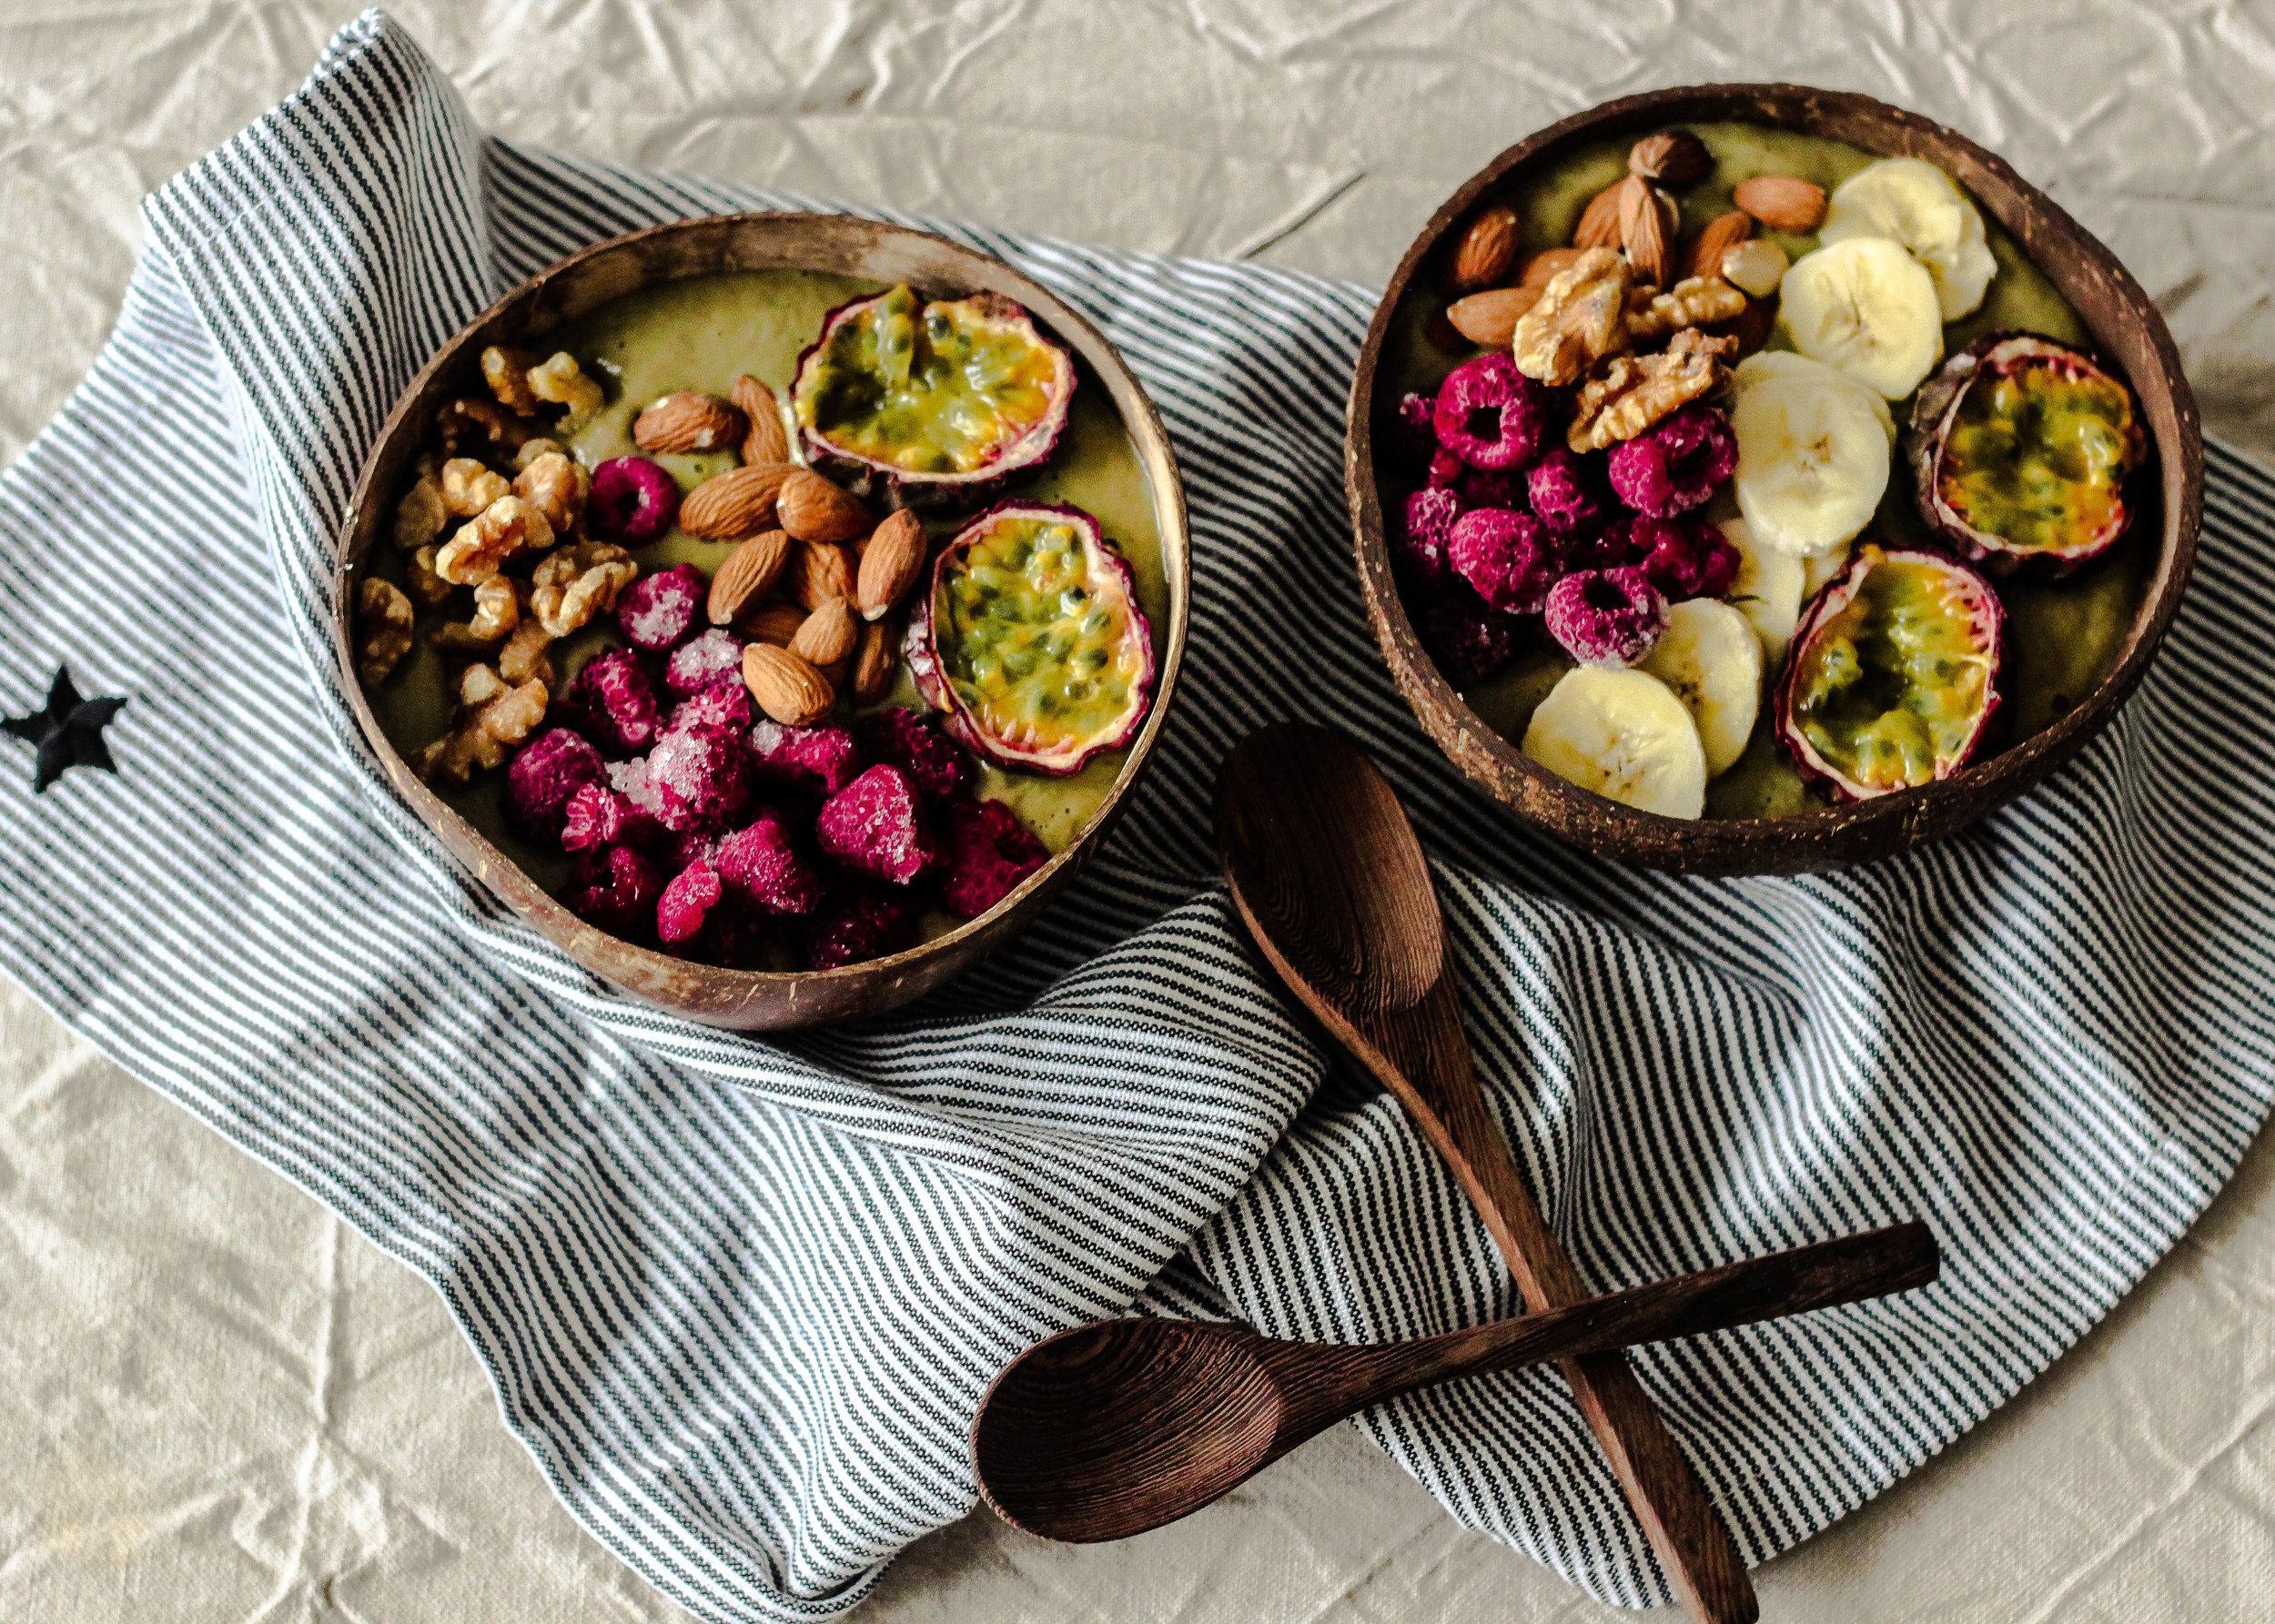 Healthy smoothie bowls with fruit and berries Photo Linda Haggh.jpg